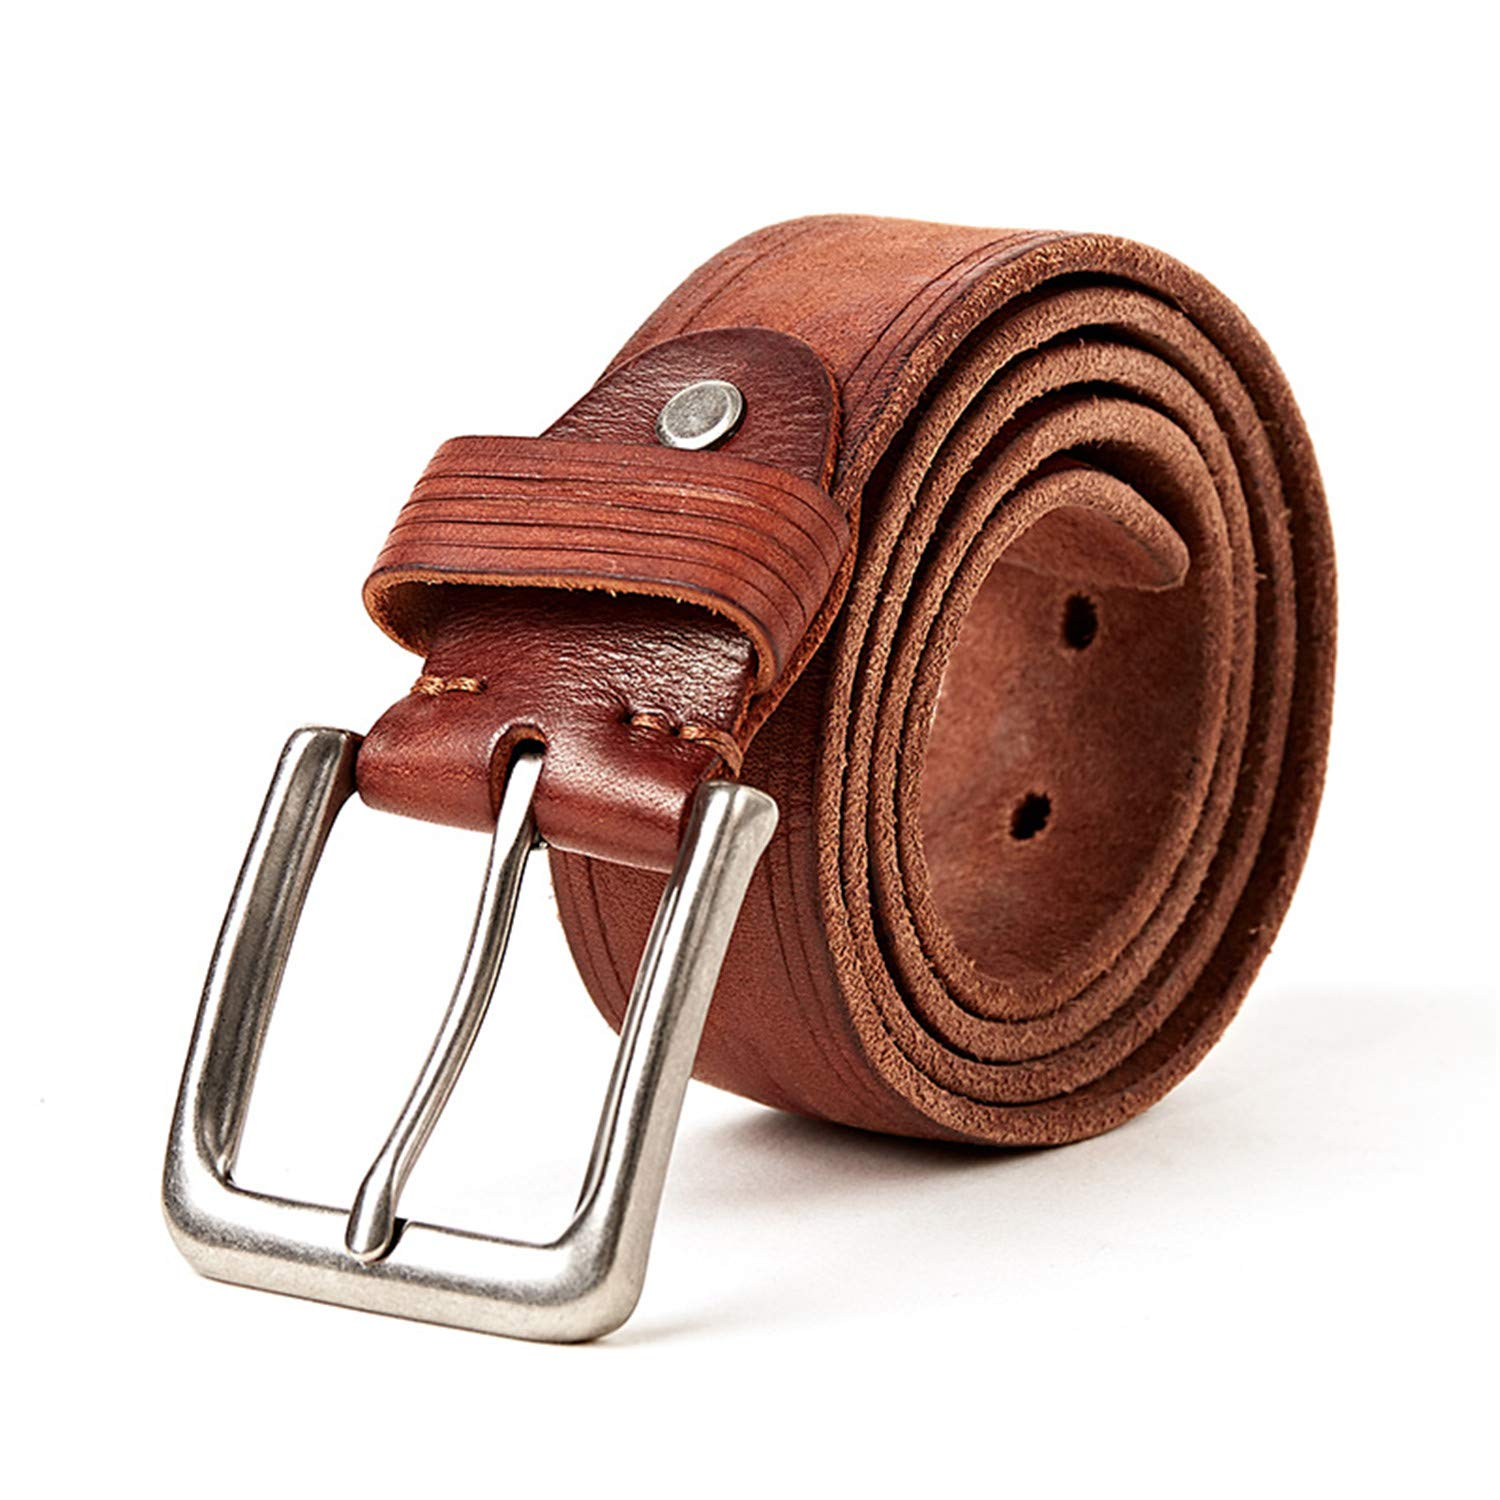 100/% Leather Belt Jeans Men Belt Good Quality Male Strap Wedding Groomsmen Gift Can Be Used for 10 Years